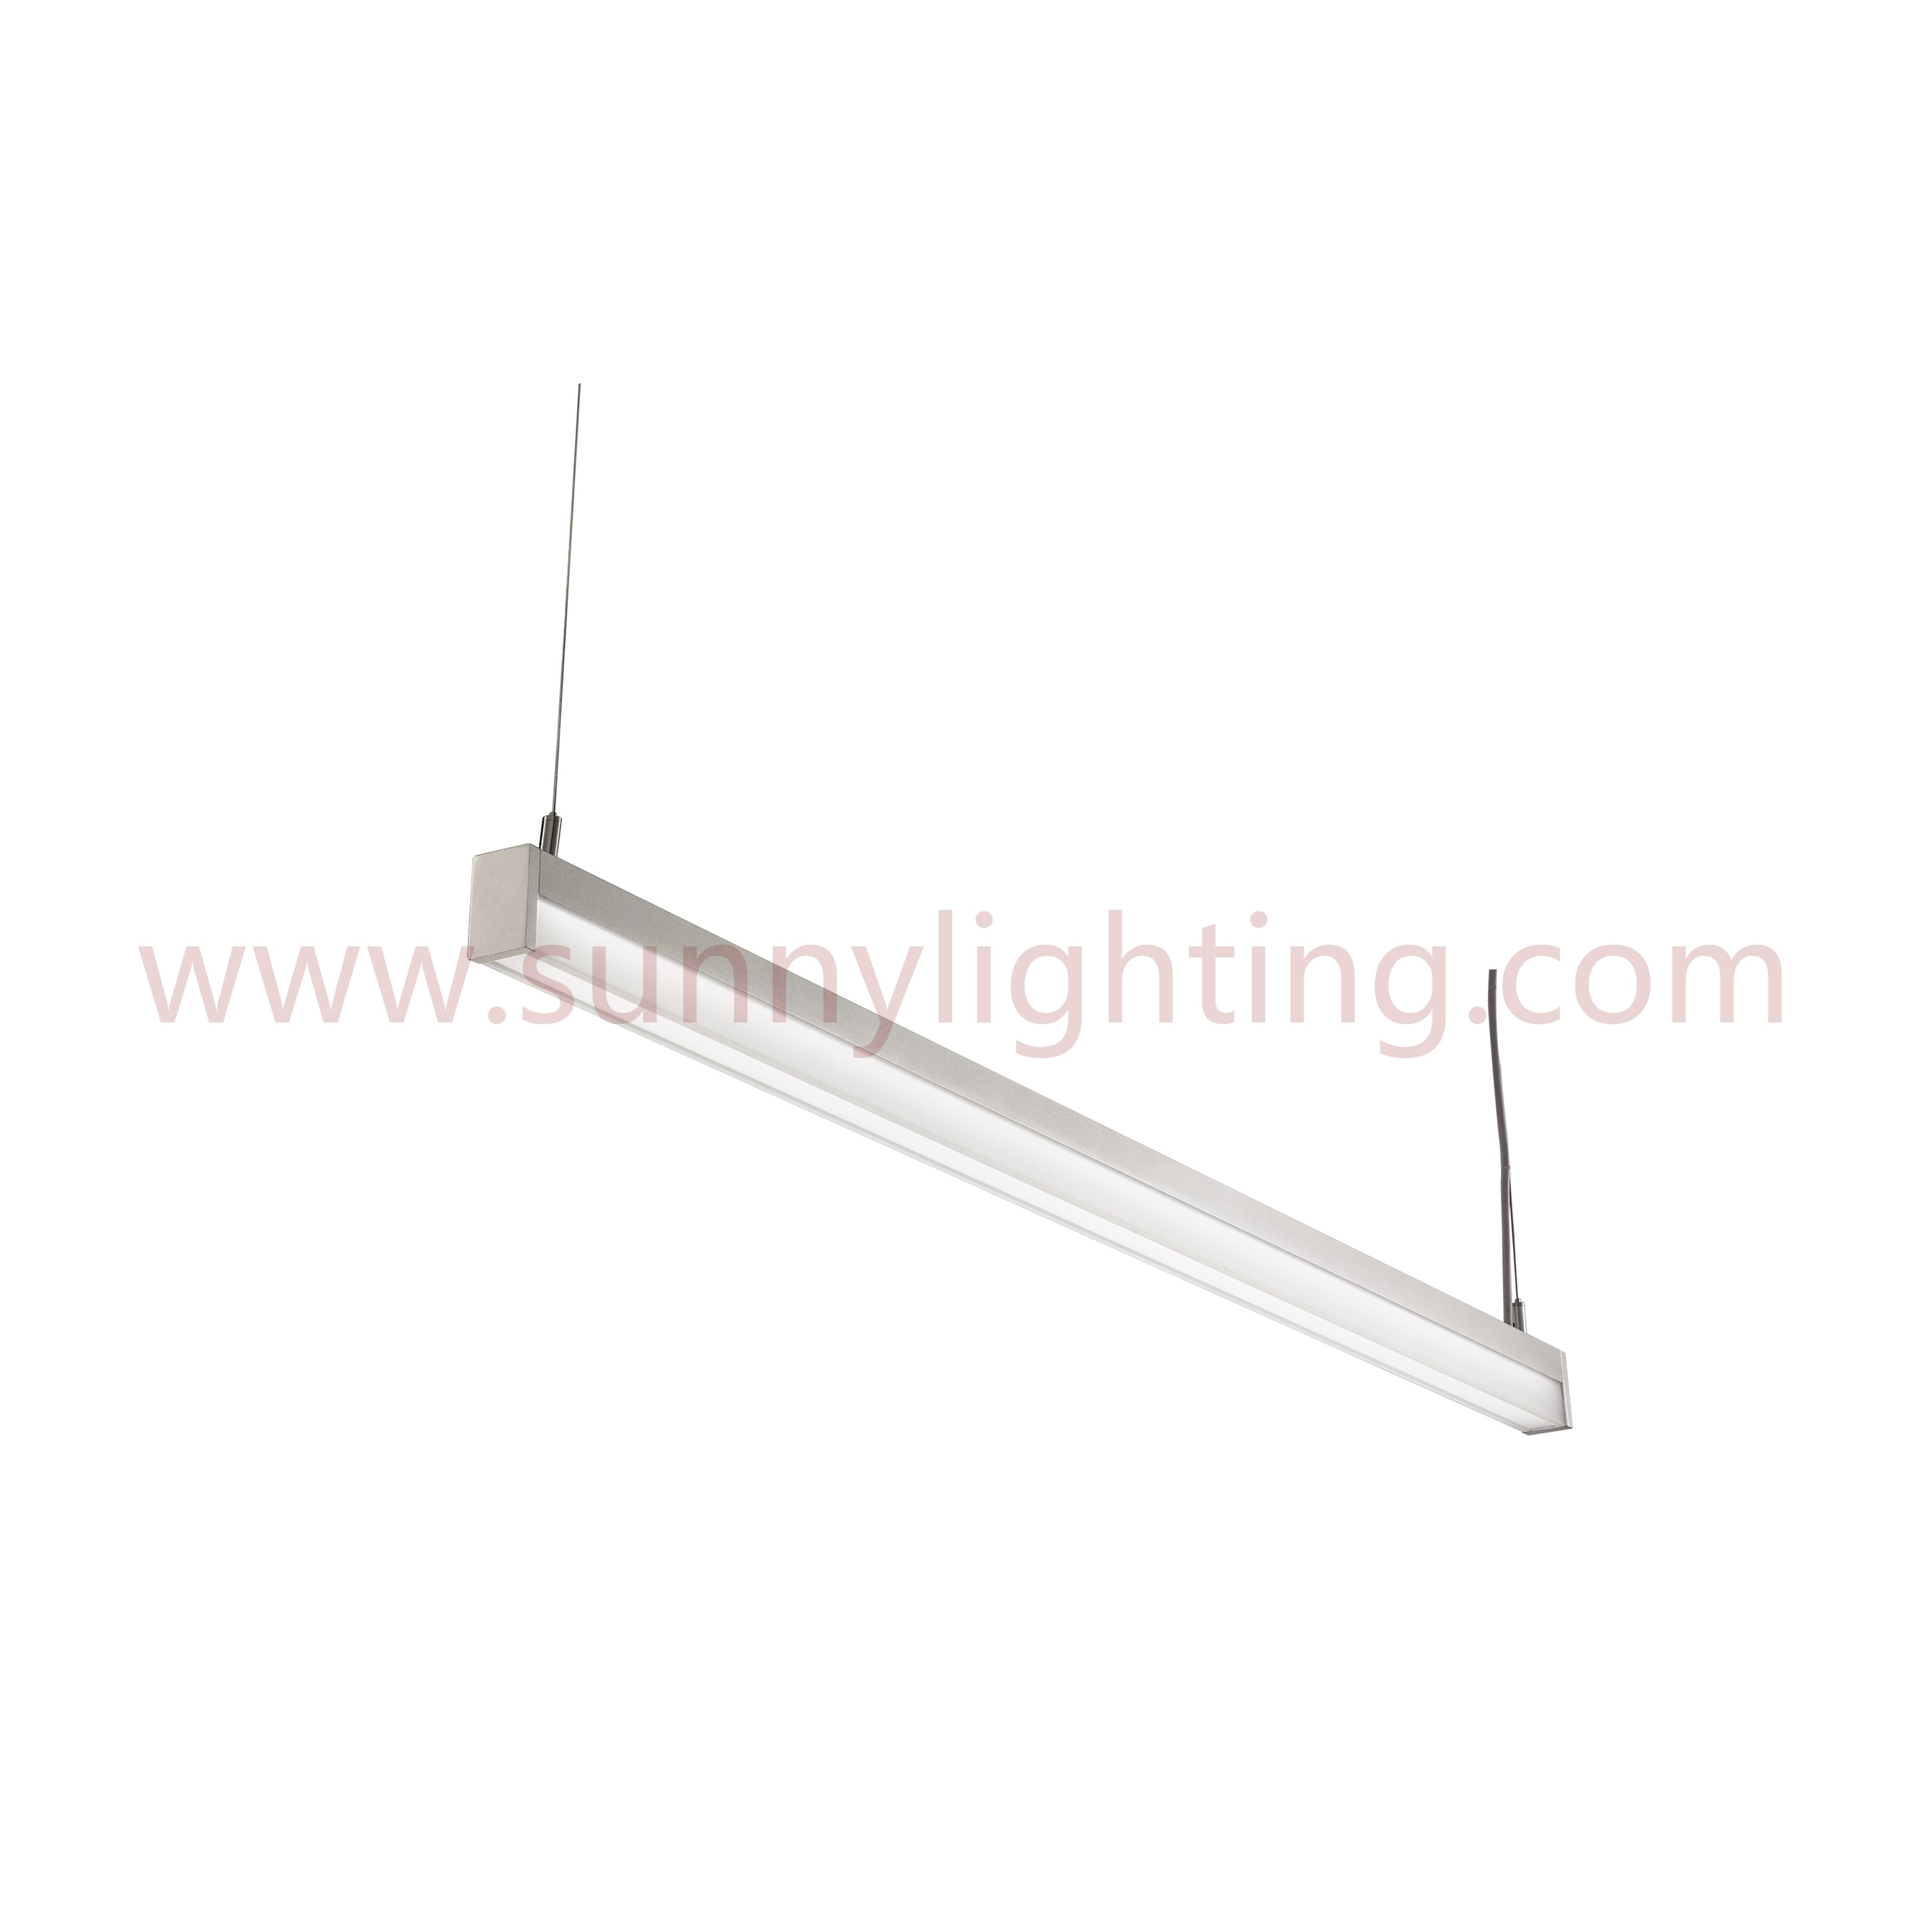 LED Linear Light 7.2W/10.8W/14.4W/18W LED-034